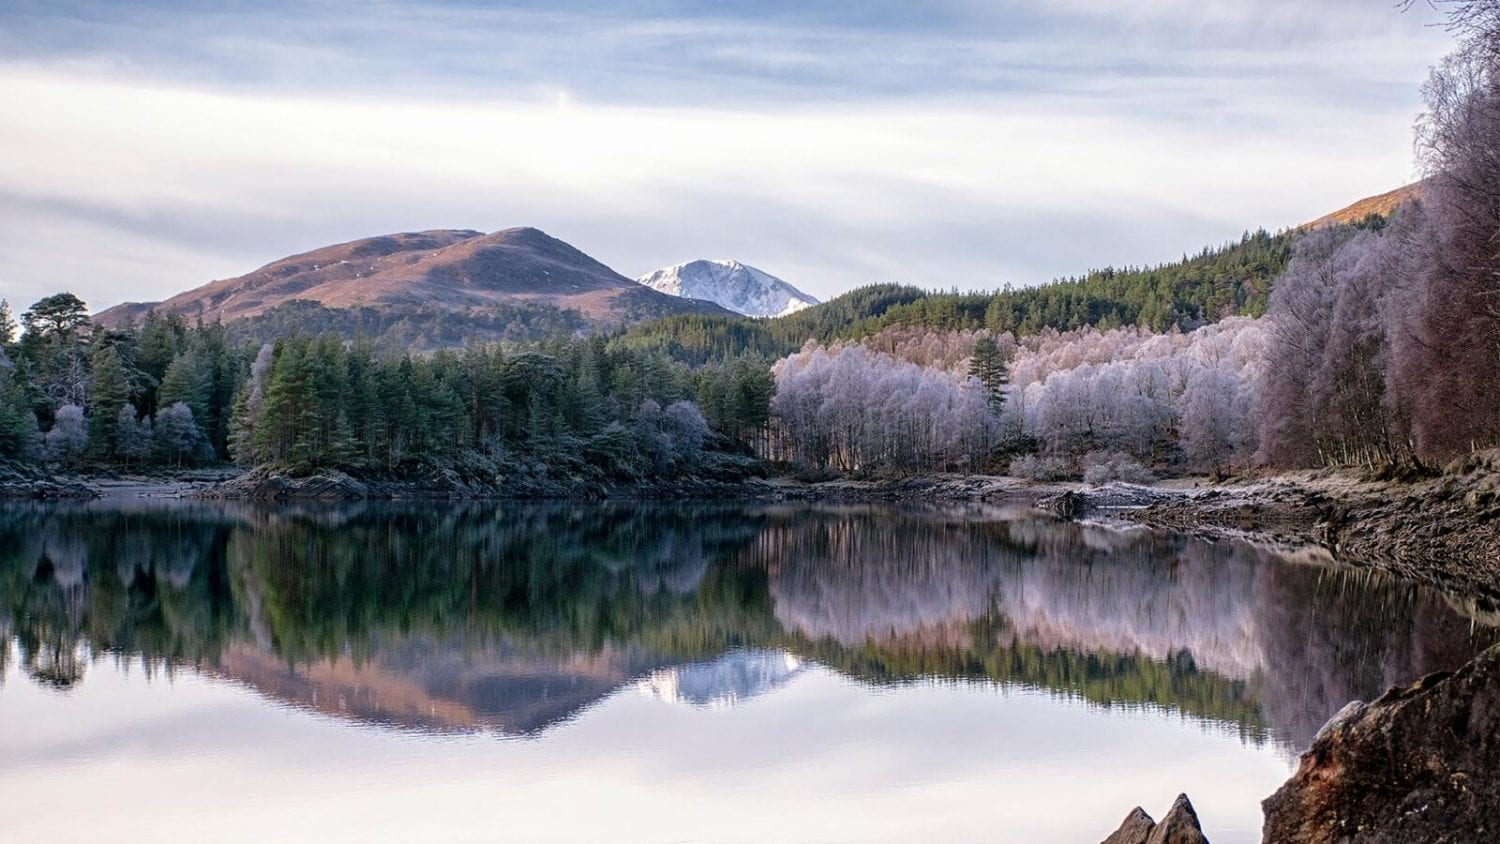 Glenn Affric forest and lake in the frost